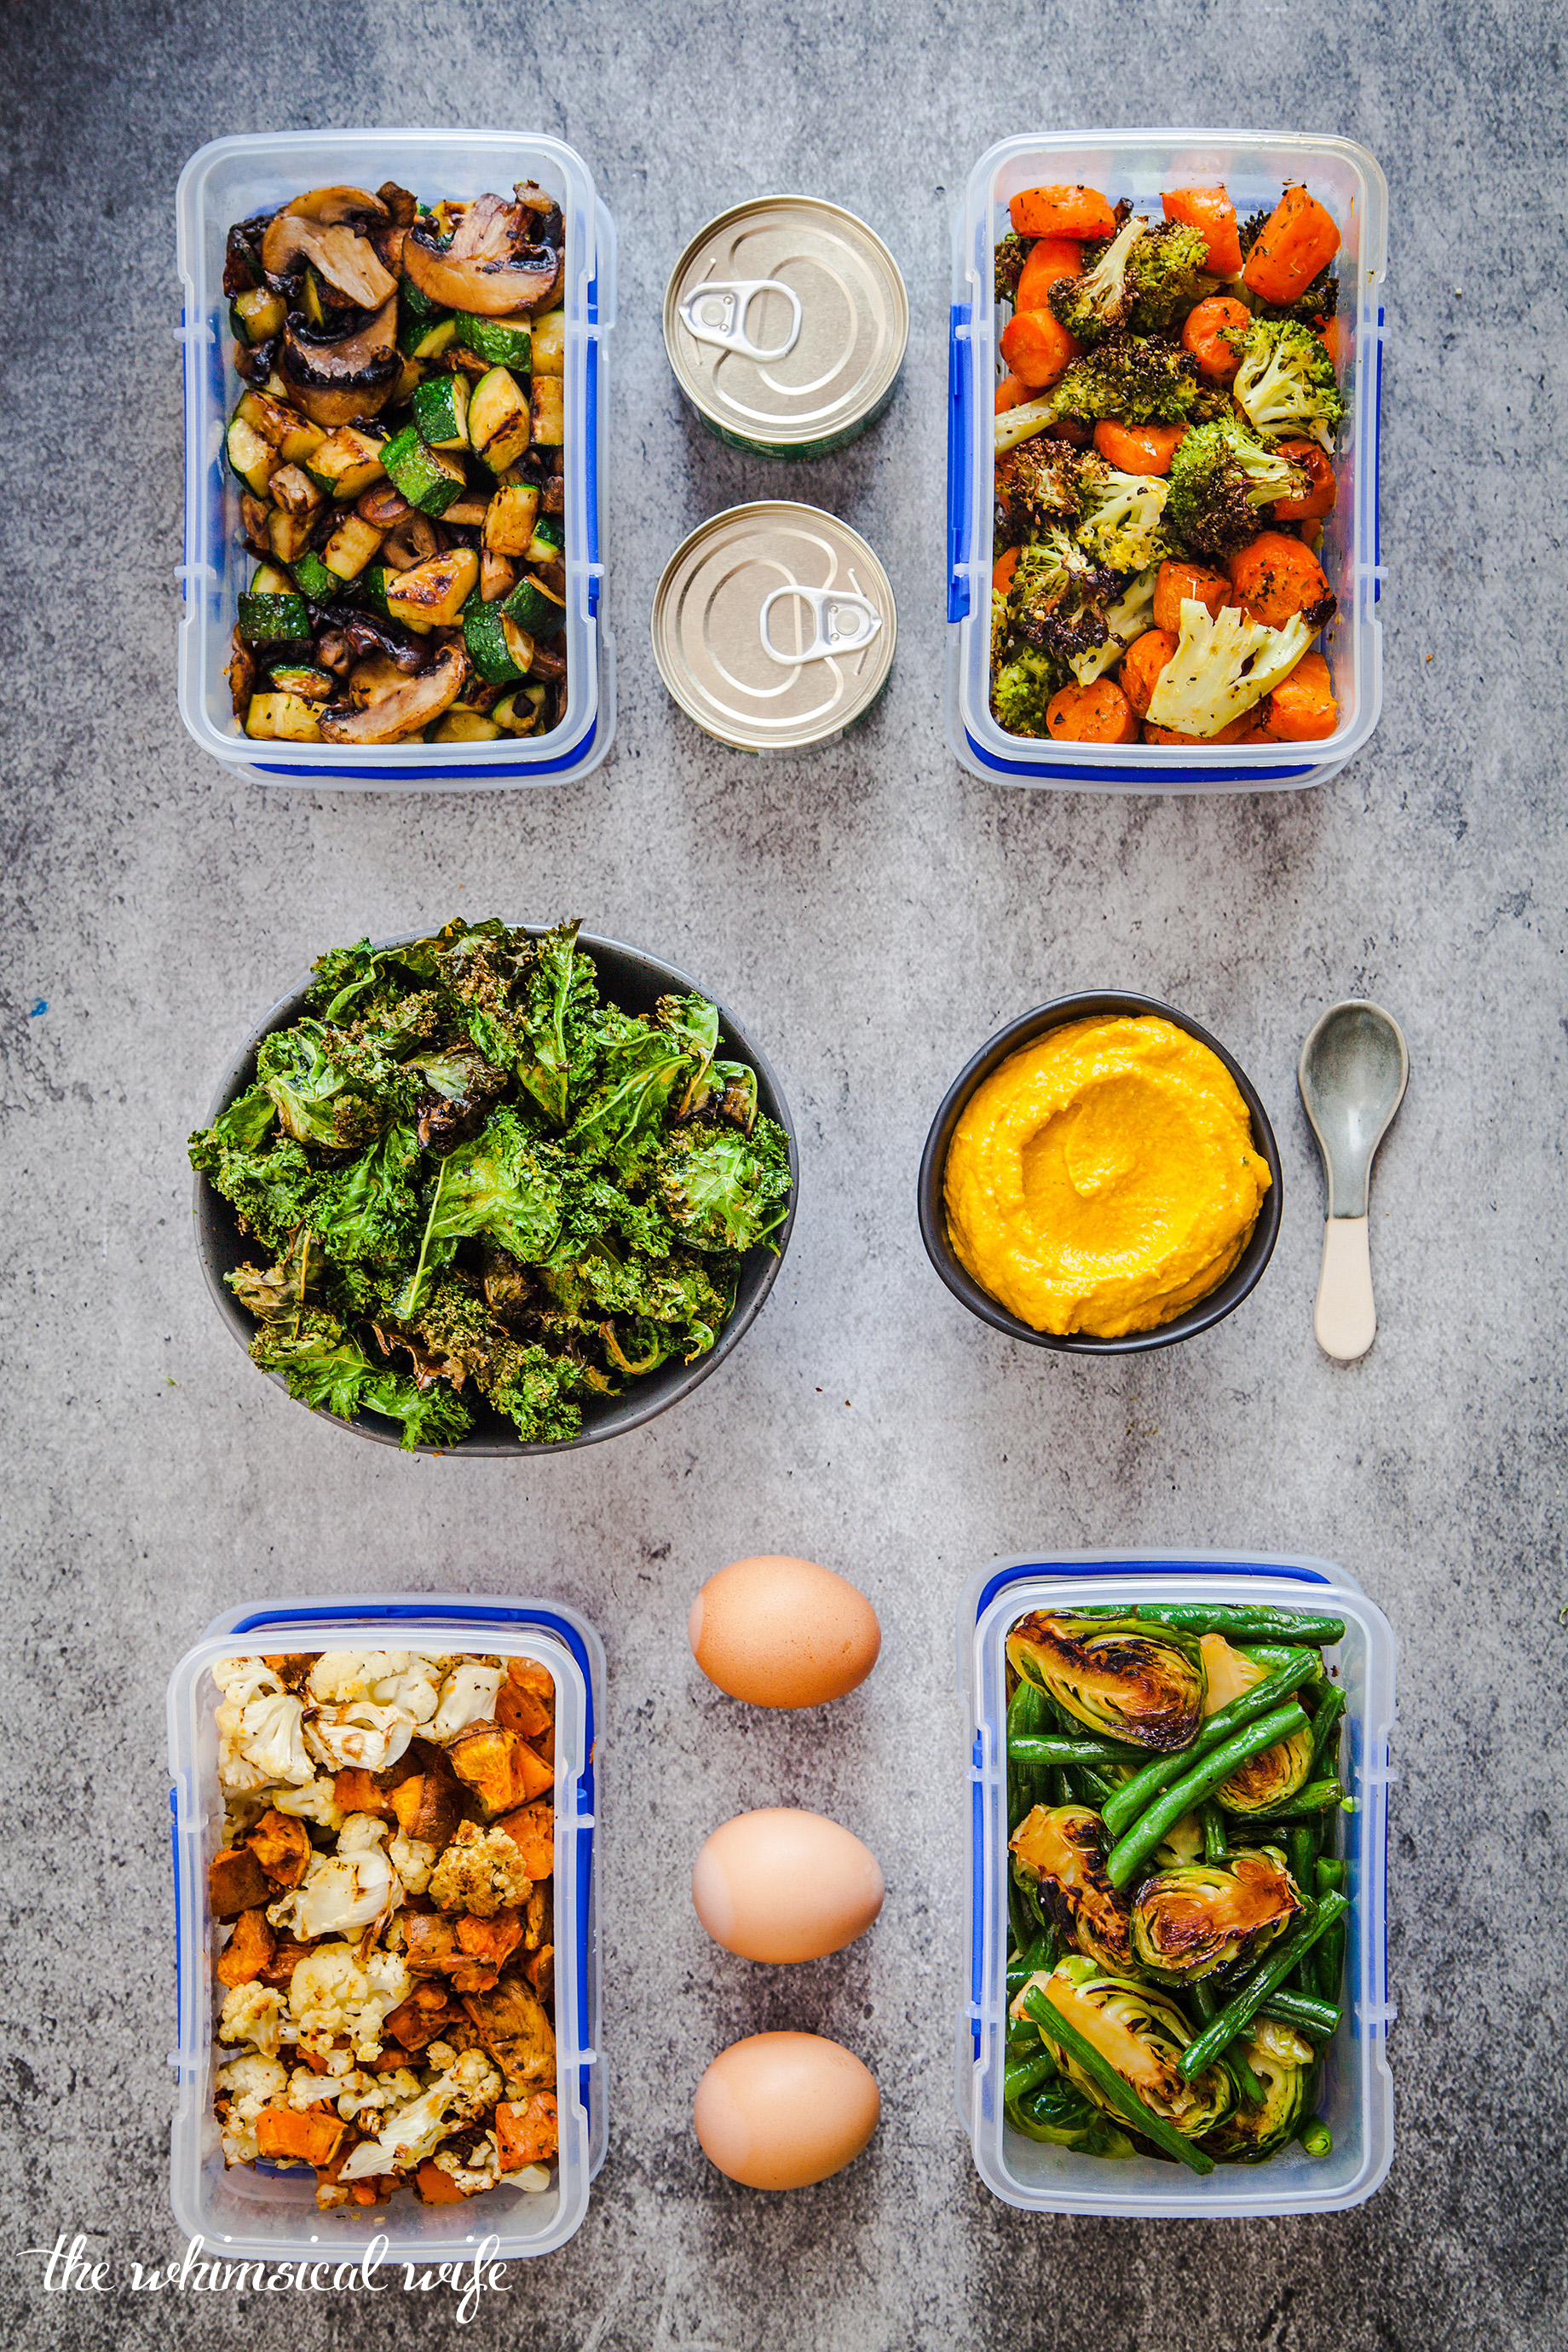 Lunch Edition: How To Meal Prep Your Way To A Healthier You + Free Printable | The Whimsical Wife